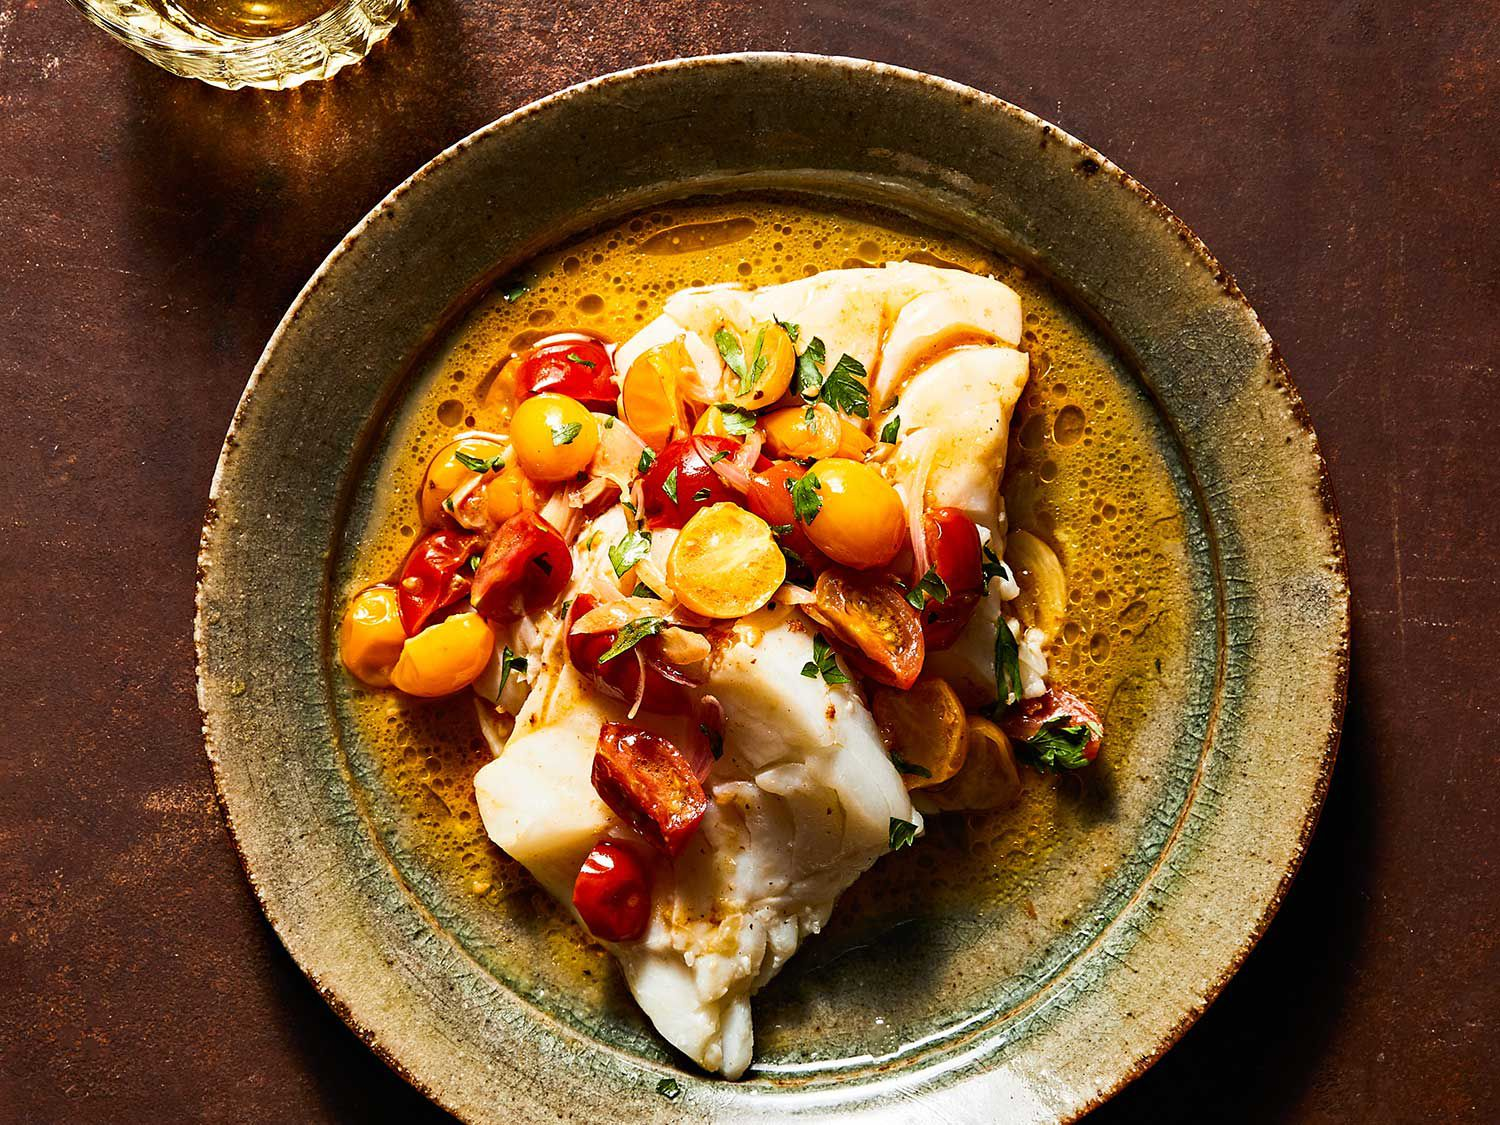 "Brown butter, or what the French call beurre <em>noisette</em>, is enhanced with summer tomatoes and a splash of vermouth for the superlative sauce in this weeknight fish dish. Get the recipe for<a href=""https://www.saveur.com/skillet-cod-with-brown-butter-tomato-sauce-recipe/"">Skillet Cod with Brown-Butter Tomato Sauce</a>"